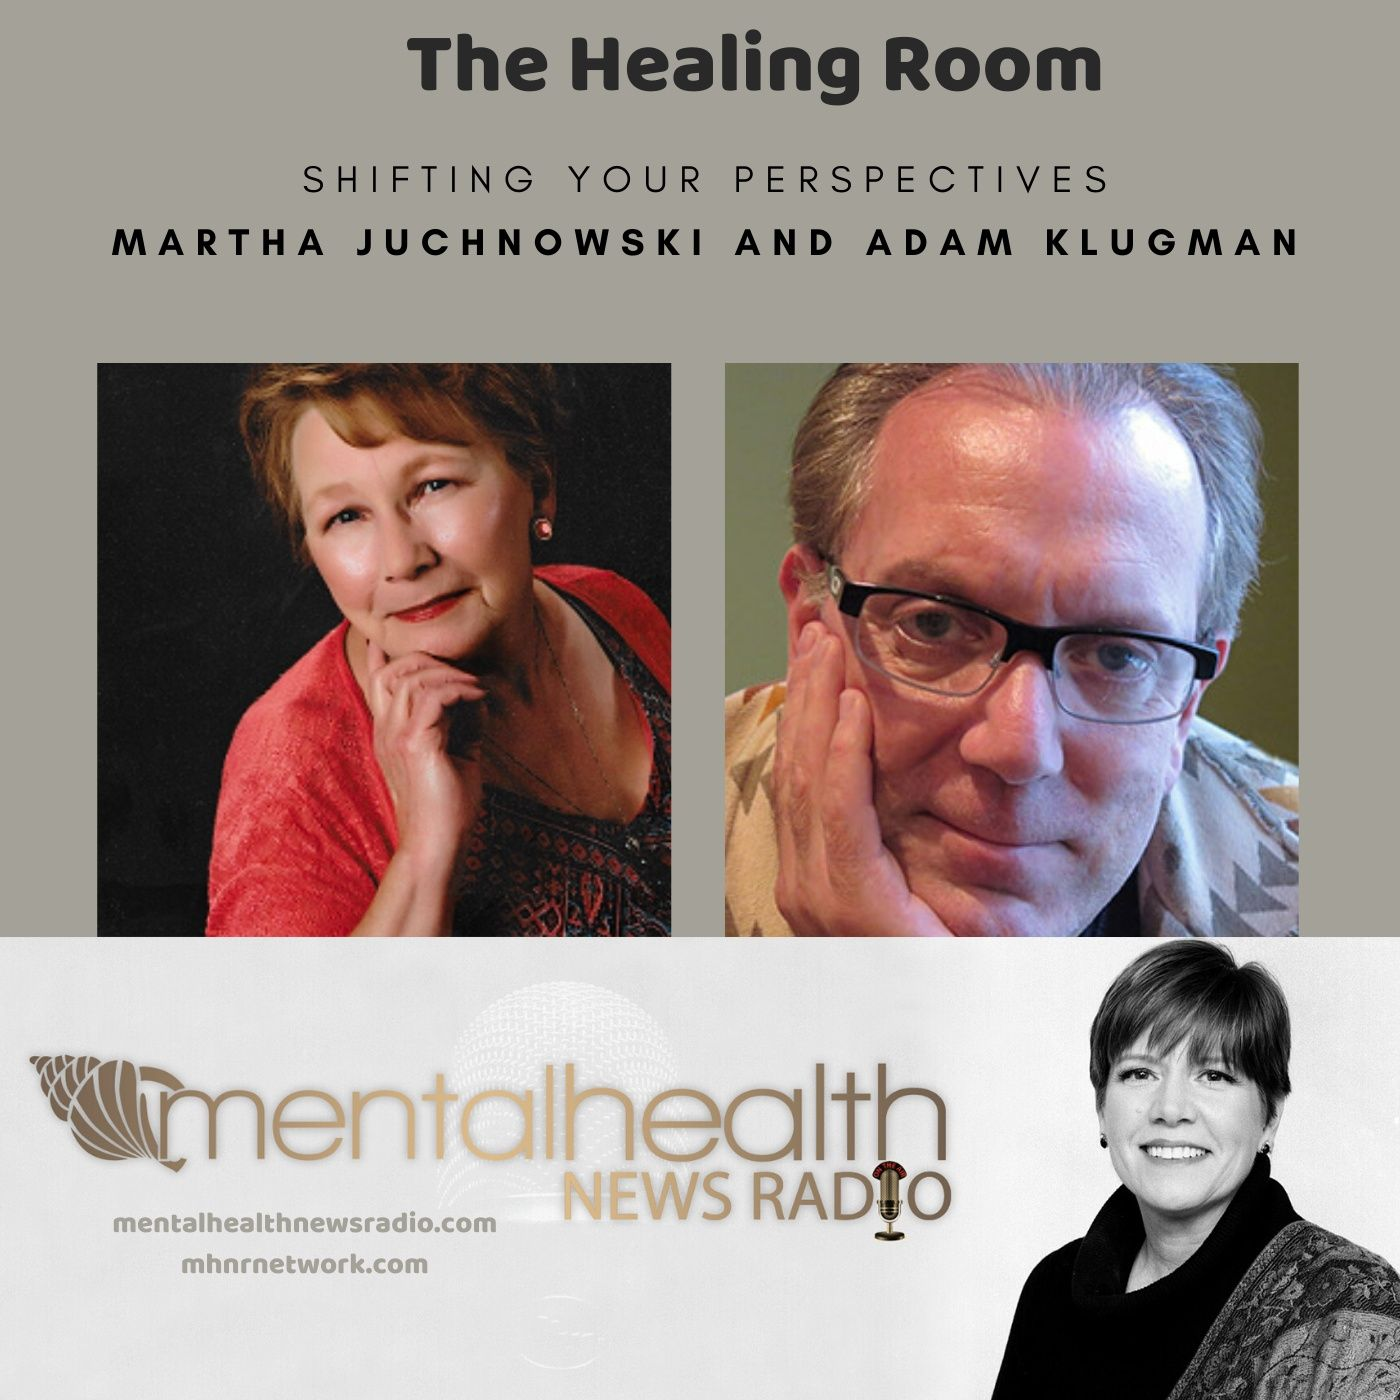 Mental Health News Radio - The Healing Room: Shifting Your Perspectives